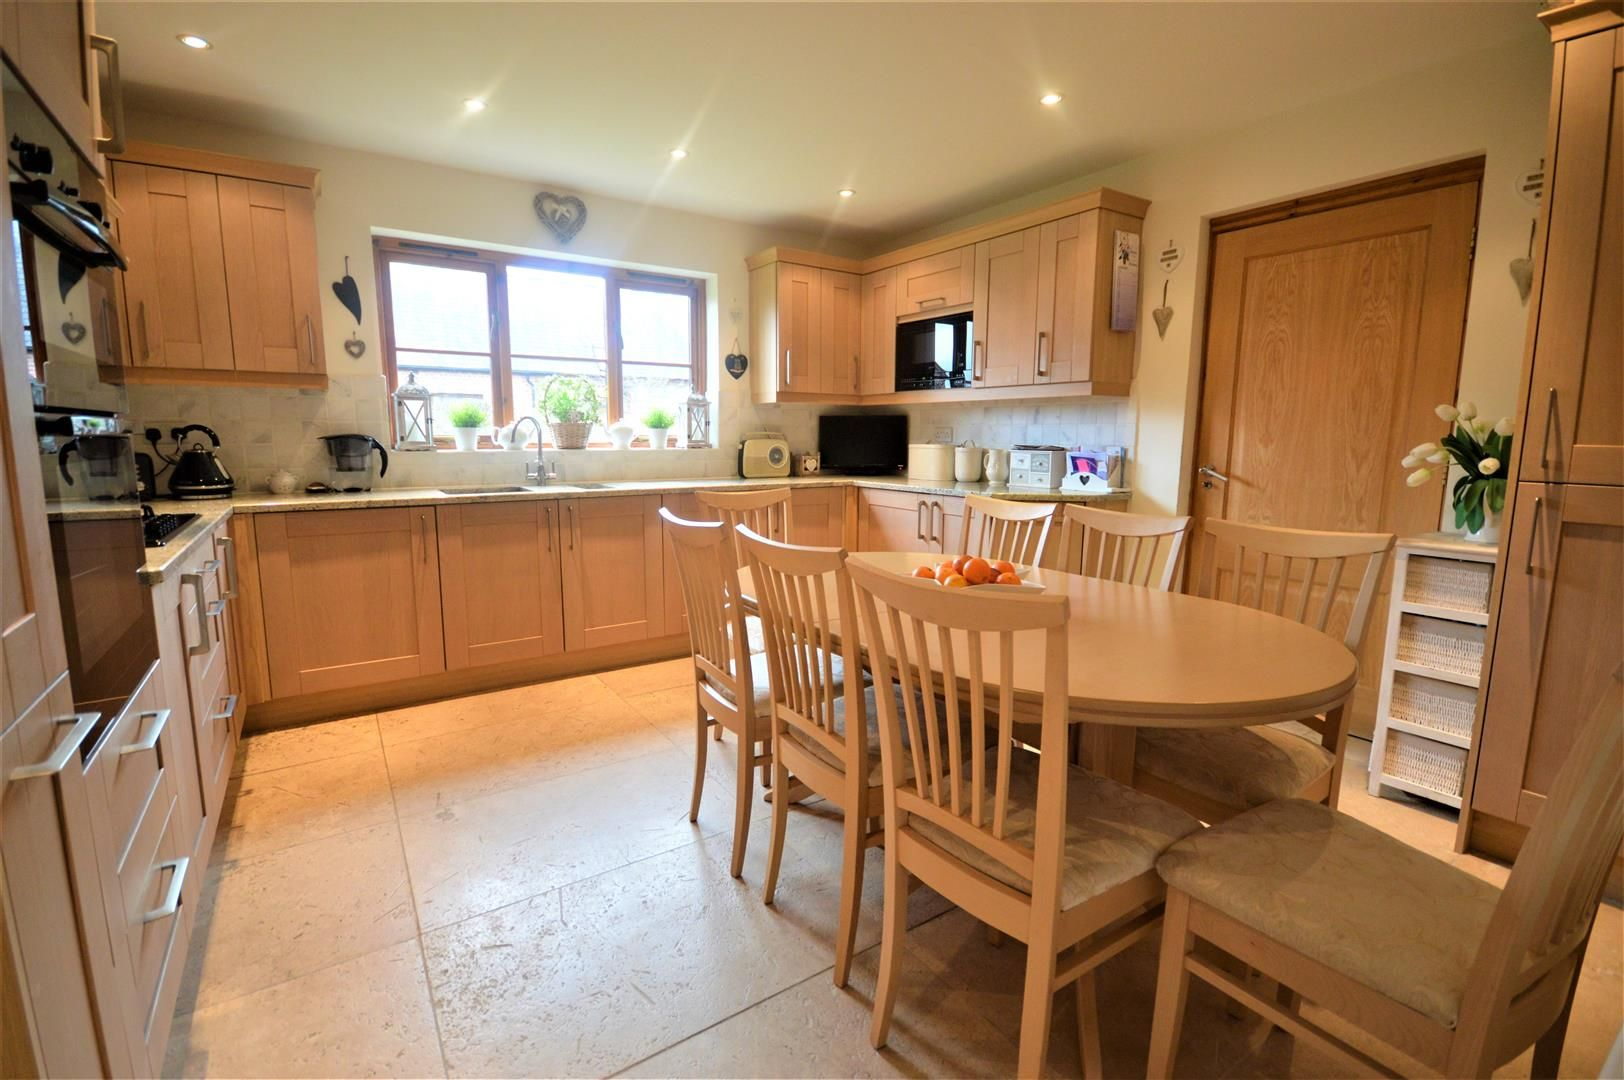 4 bed detached for sale in Eardisley  - Property Image 3